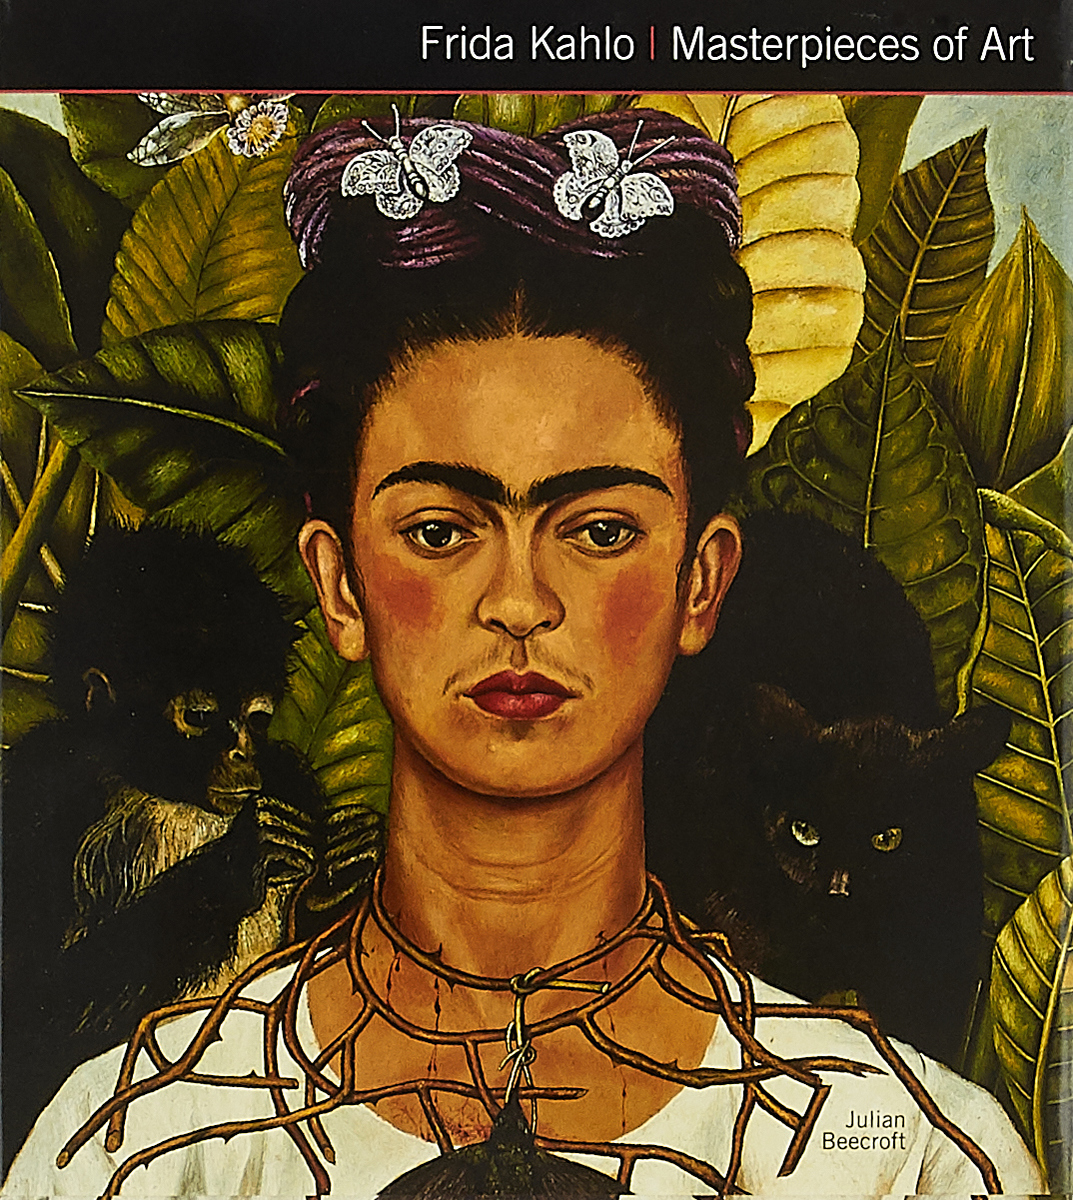 Frida Kahlo. Masterpieces of Art quality of life of children suffering from sickle cell anemia